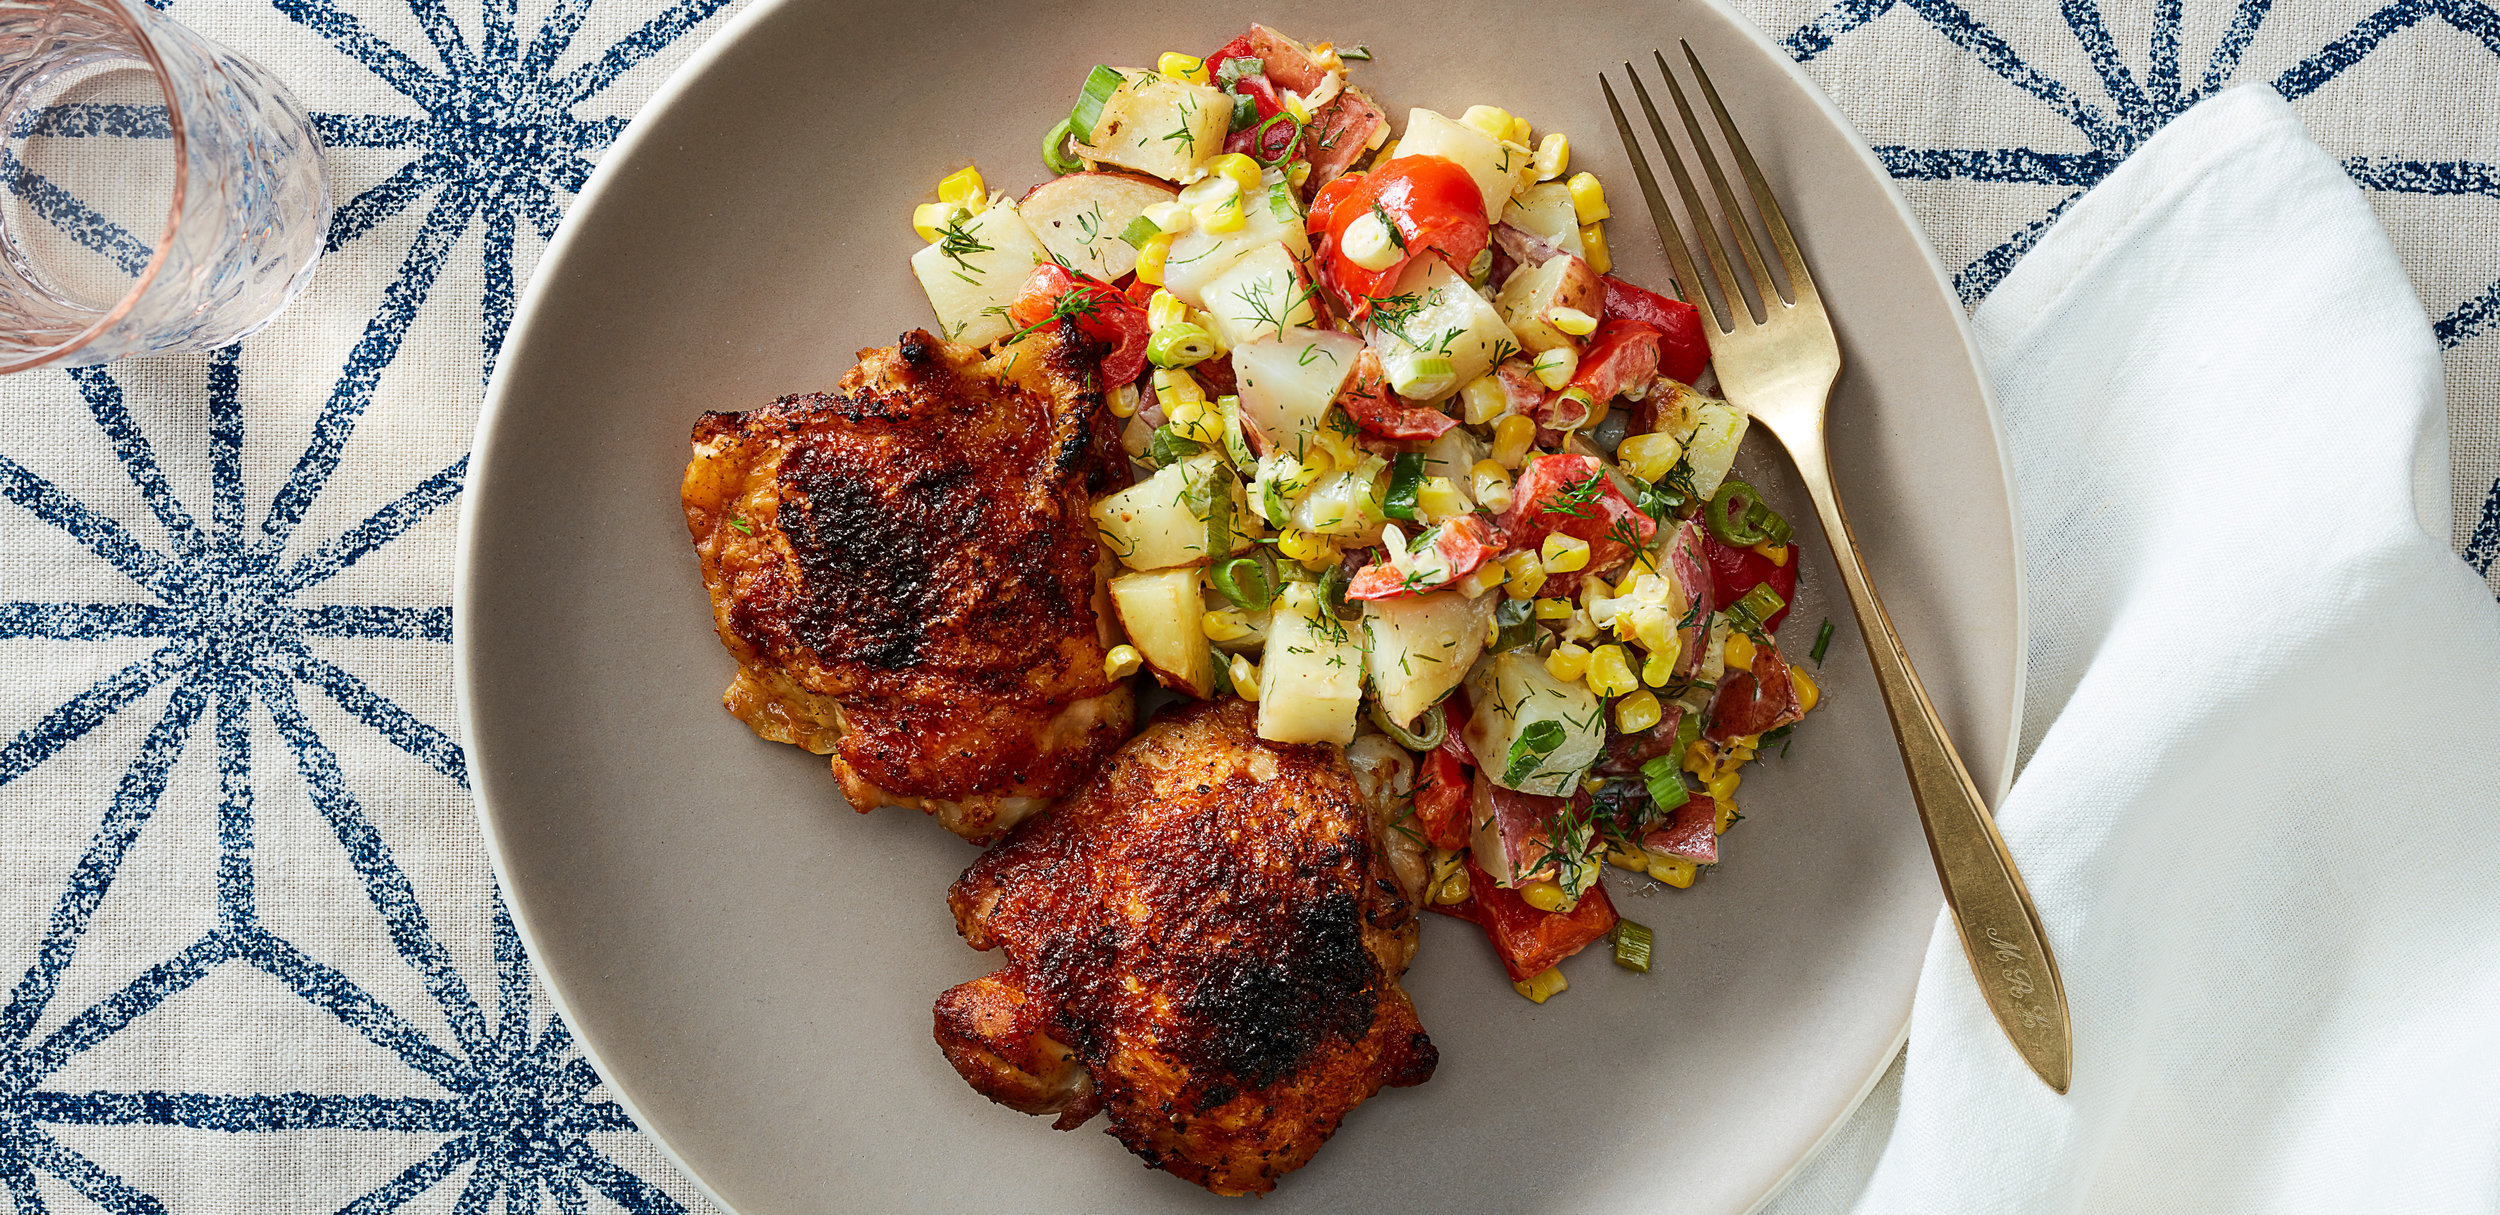 Brown Sugar Chili Chicken Thighs with Roasted Potato Salad — 0084 — HERO.jpg